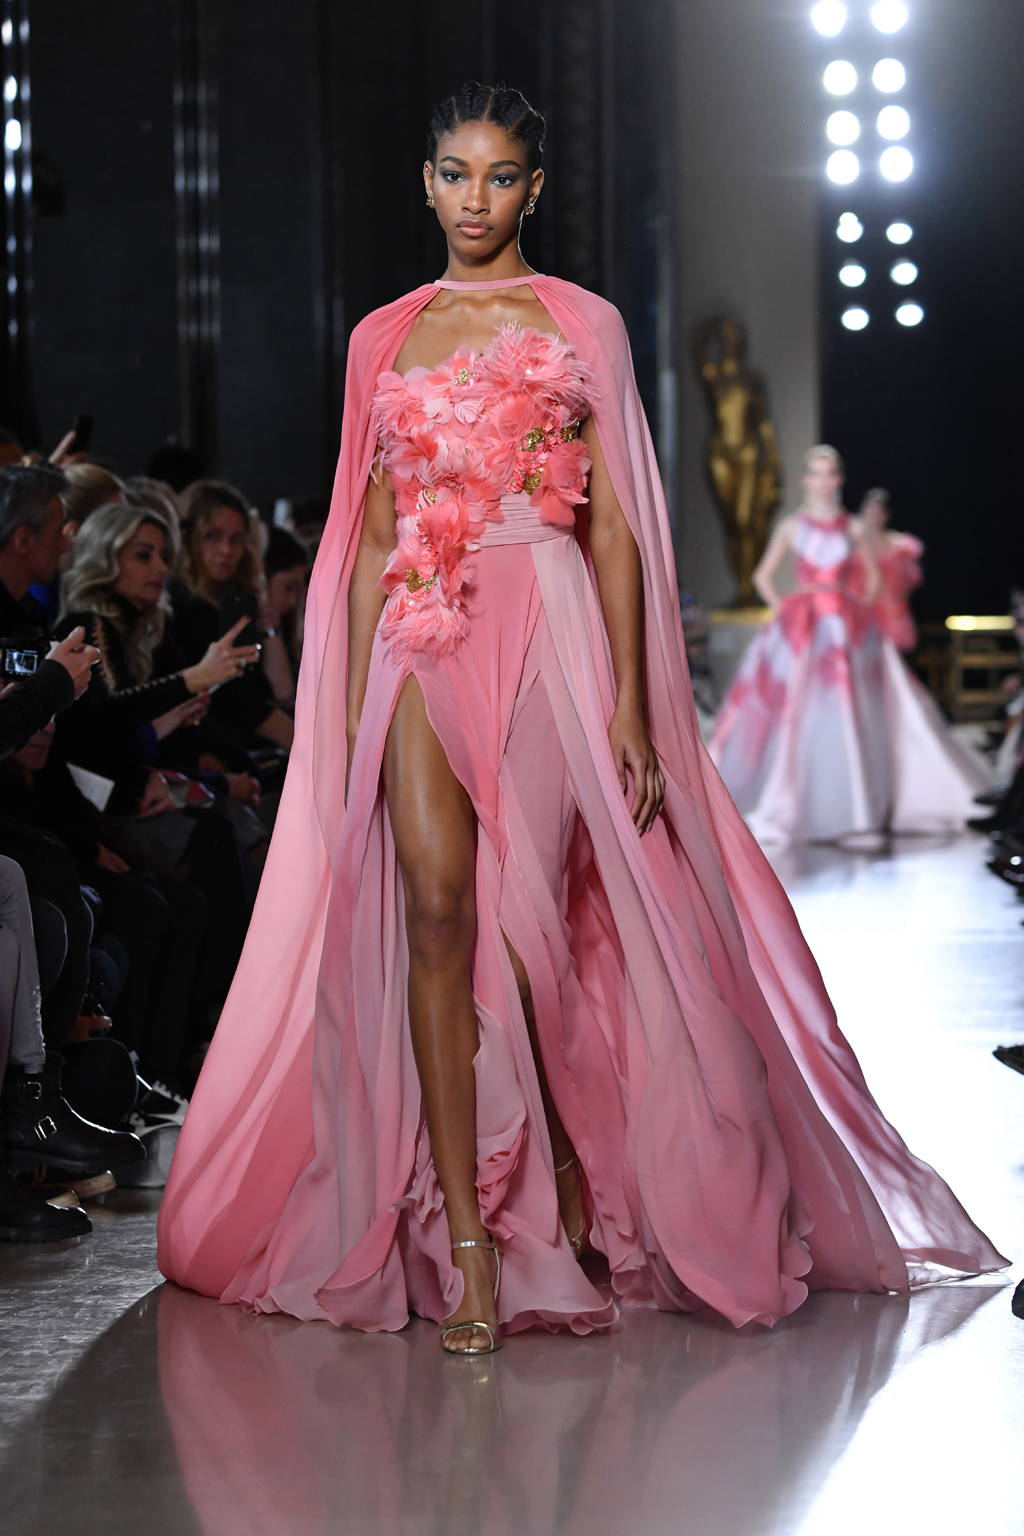 A model walks the runway during the Elie Saab Spring Summer 2019 show in a pink dress with feather and flower embellishments as part of Paris Fashion Week on January 23, 2019 in Paris, France. Paris Couture (Photo by Pascal Le Segretain/Getty Images)